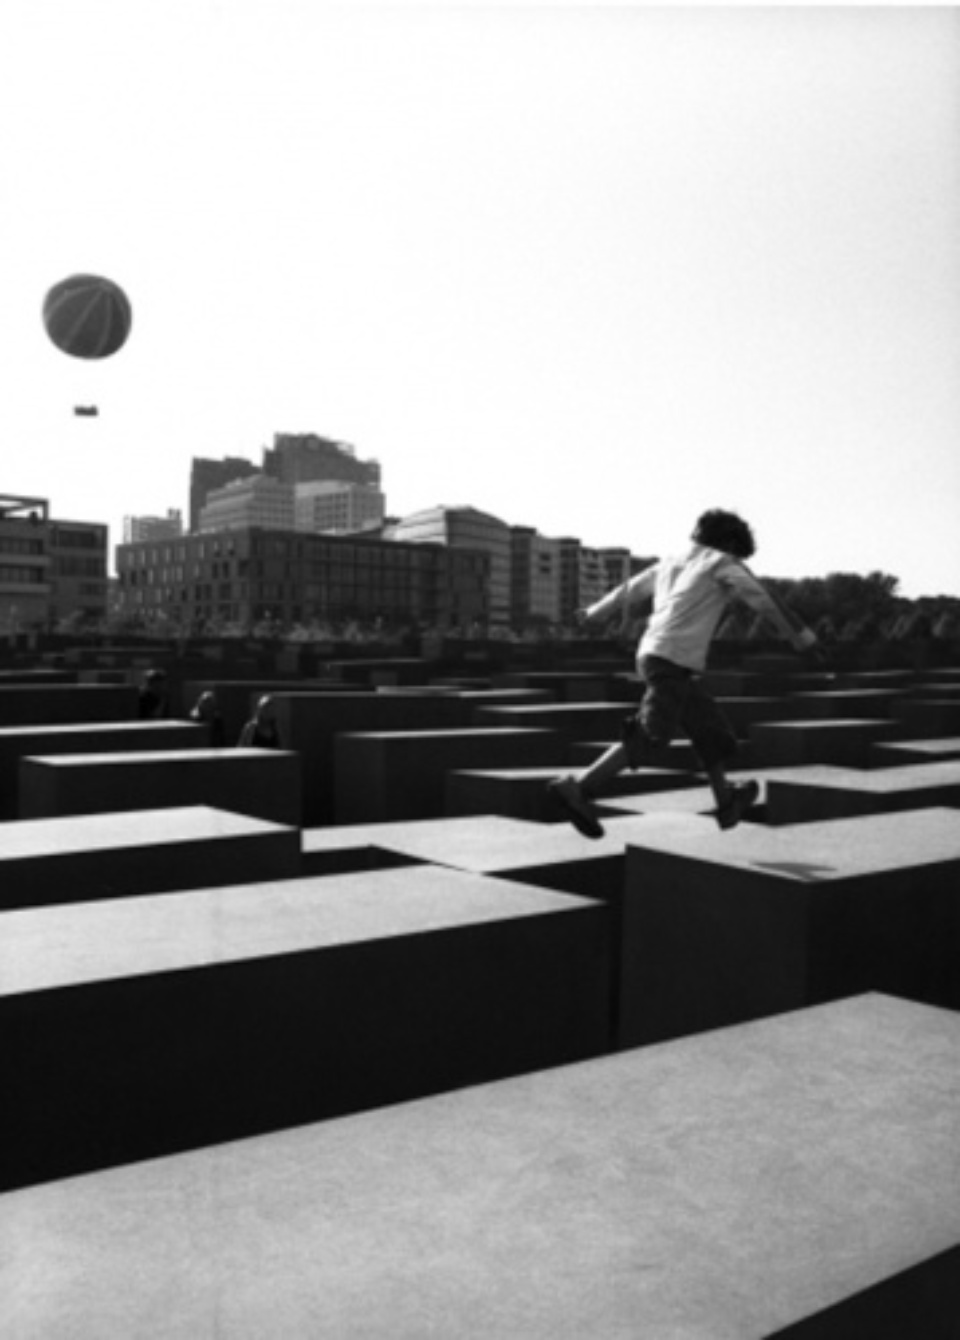 Stanko Abadzic: Jumping Boy 2006 Gelatin Silver Print Signed, titled, dated and numbered on verso 29,7x 39,2 cm Ed. 4/25